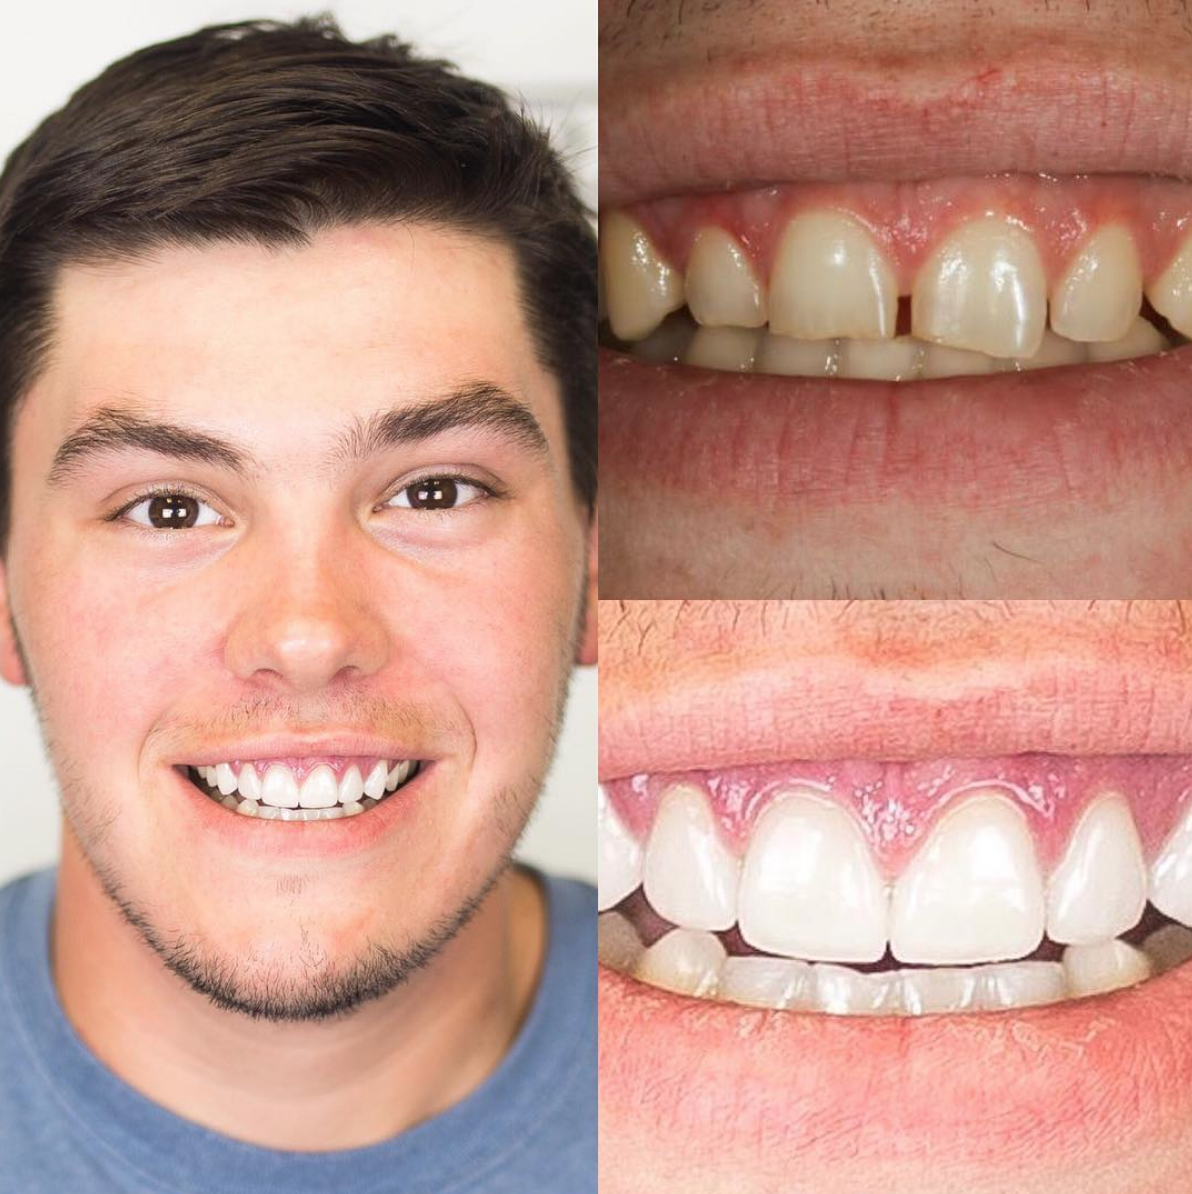 Imaginary Dental Care Tips Products #dentalcare #dentalimplantscostmouths #dentistappointment #imaginary #products #dental #care #tipsImaginary Dental Care Tips Products #dentalcare